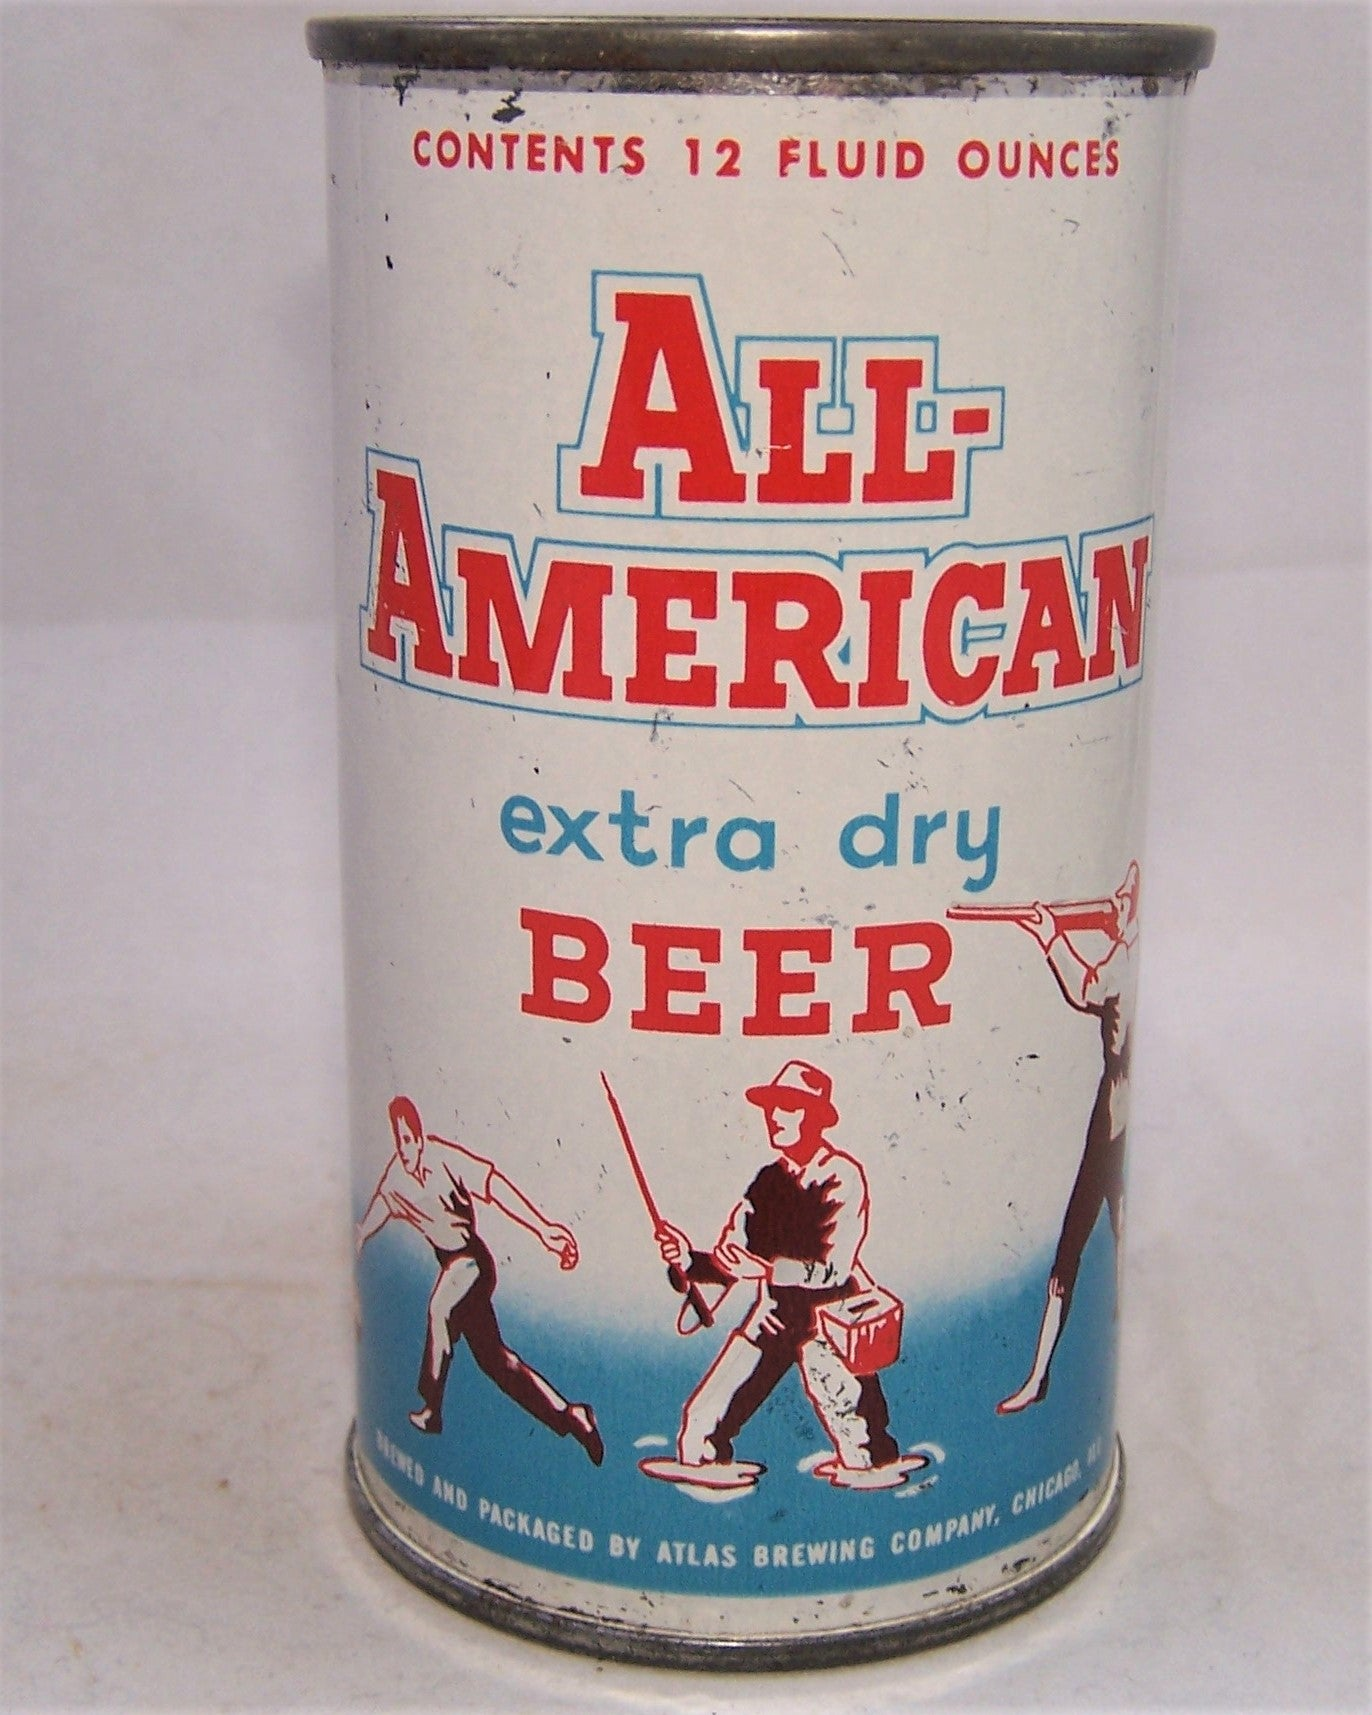 All-American Extra Dry Beer, USBC 29-27, Grade 1- Sold on 02/18/19